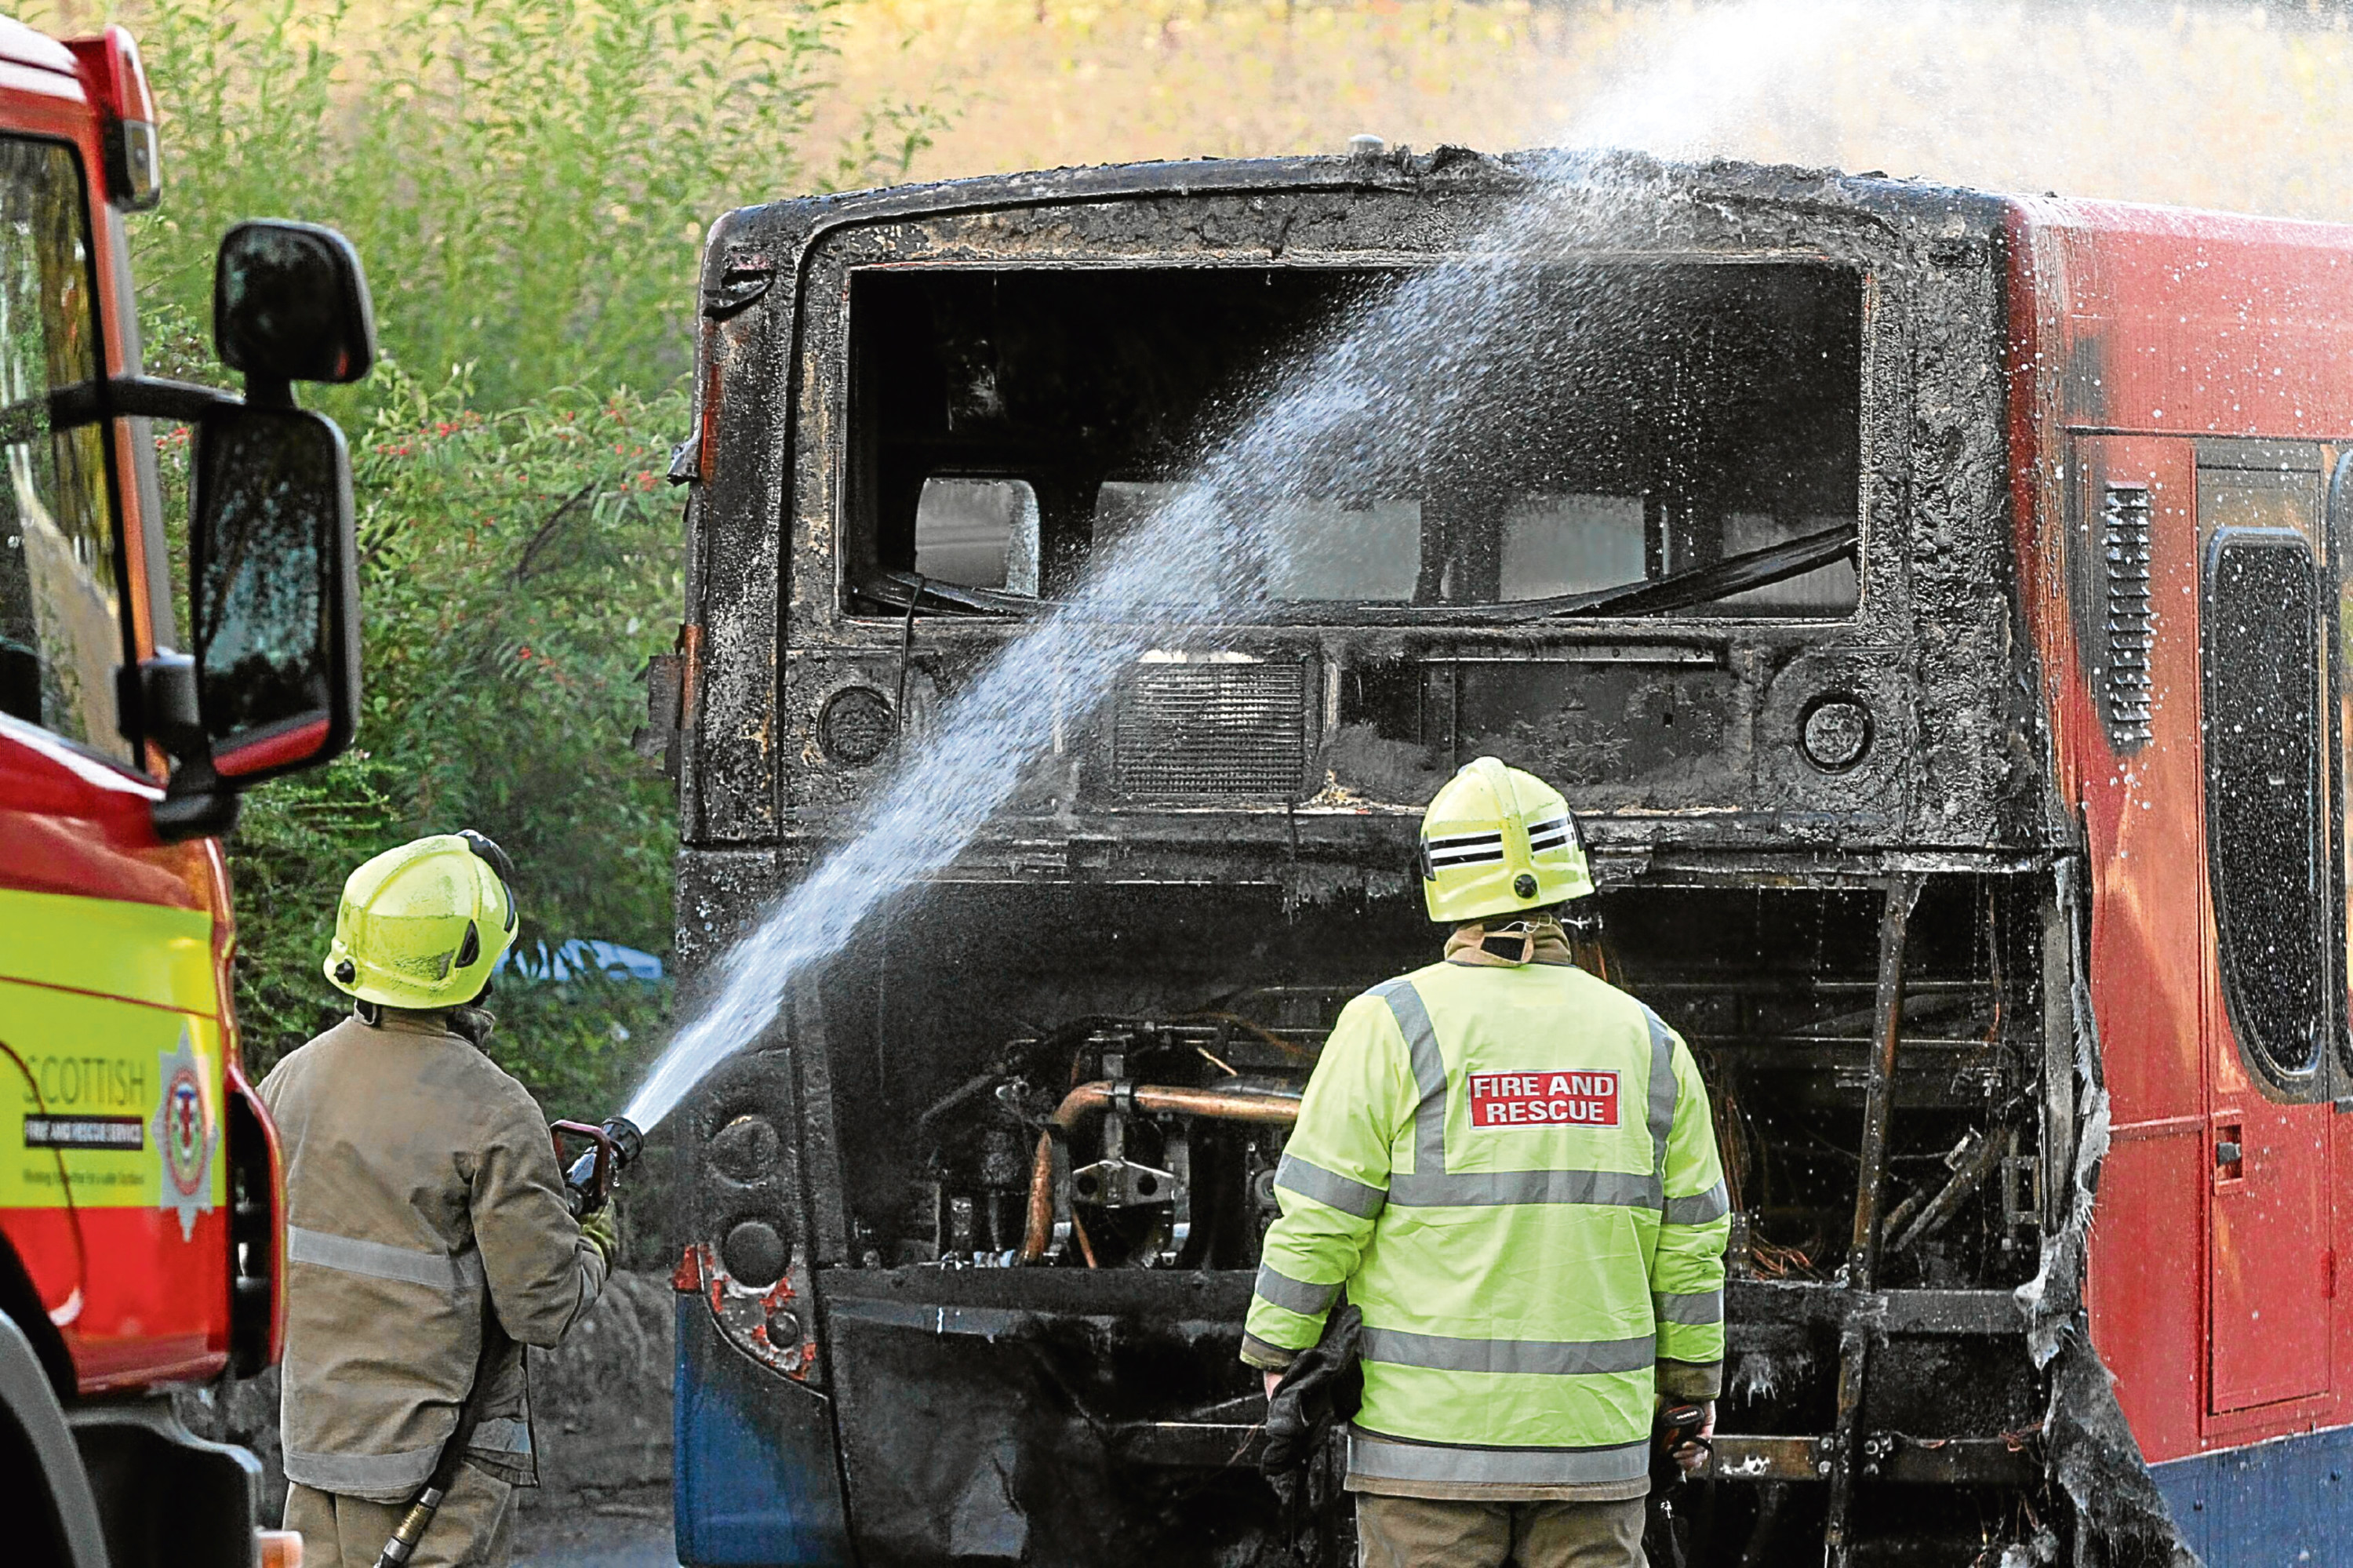 Firefighters see to the damaged bus